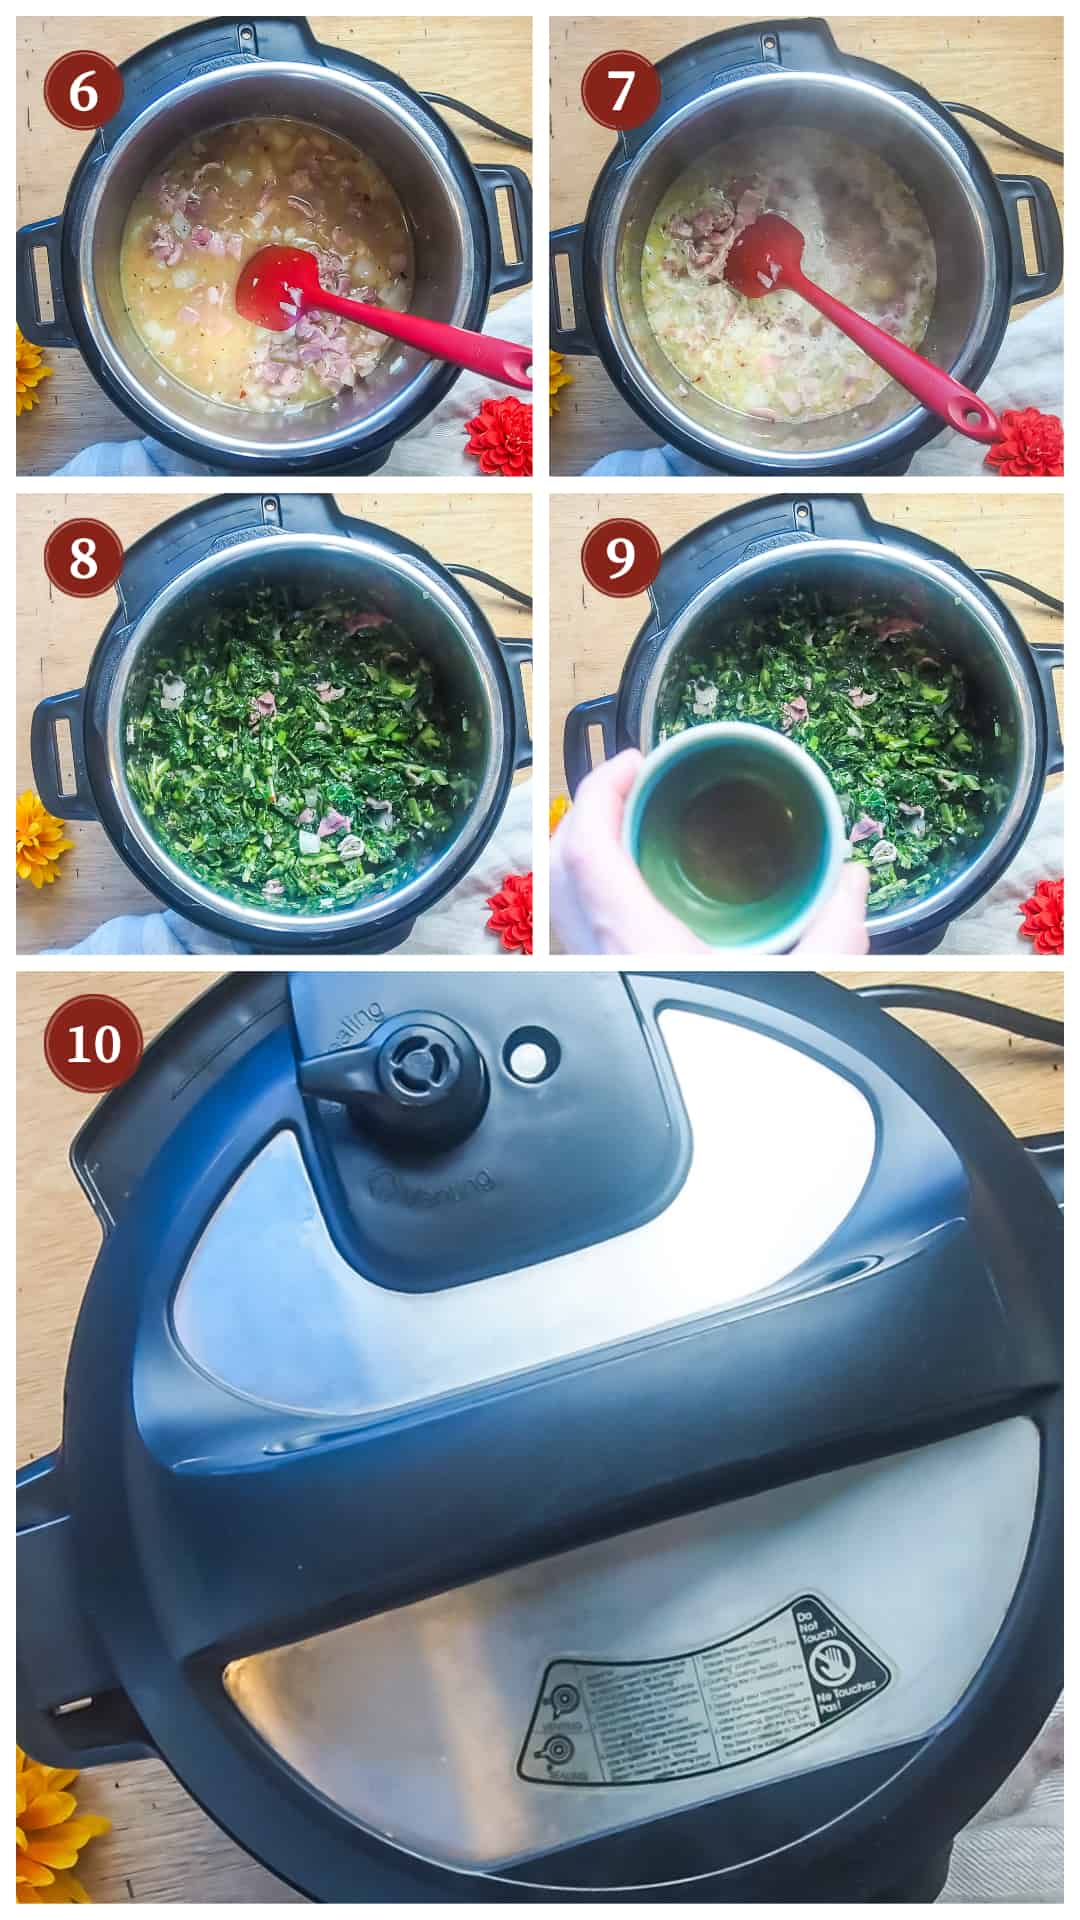 a collage of images showing the process of making collard greens in an instant pot, steps 6 - 10